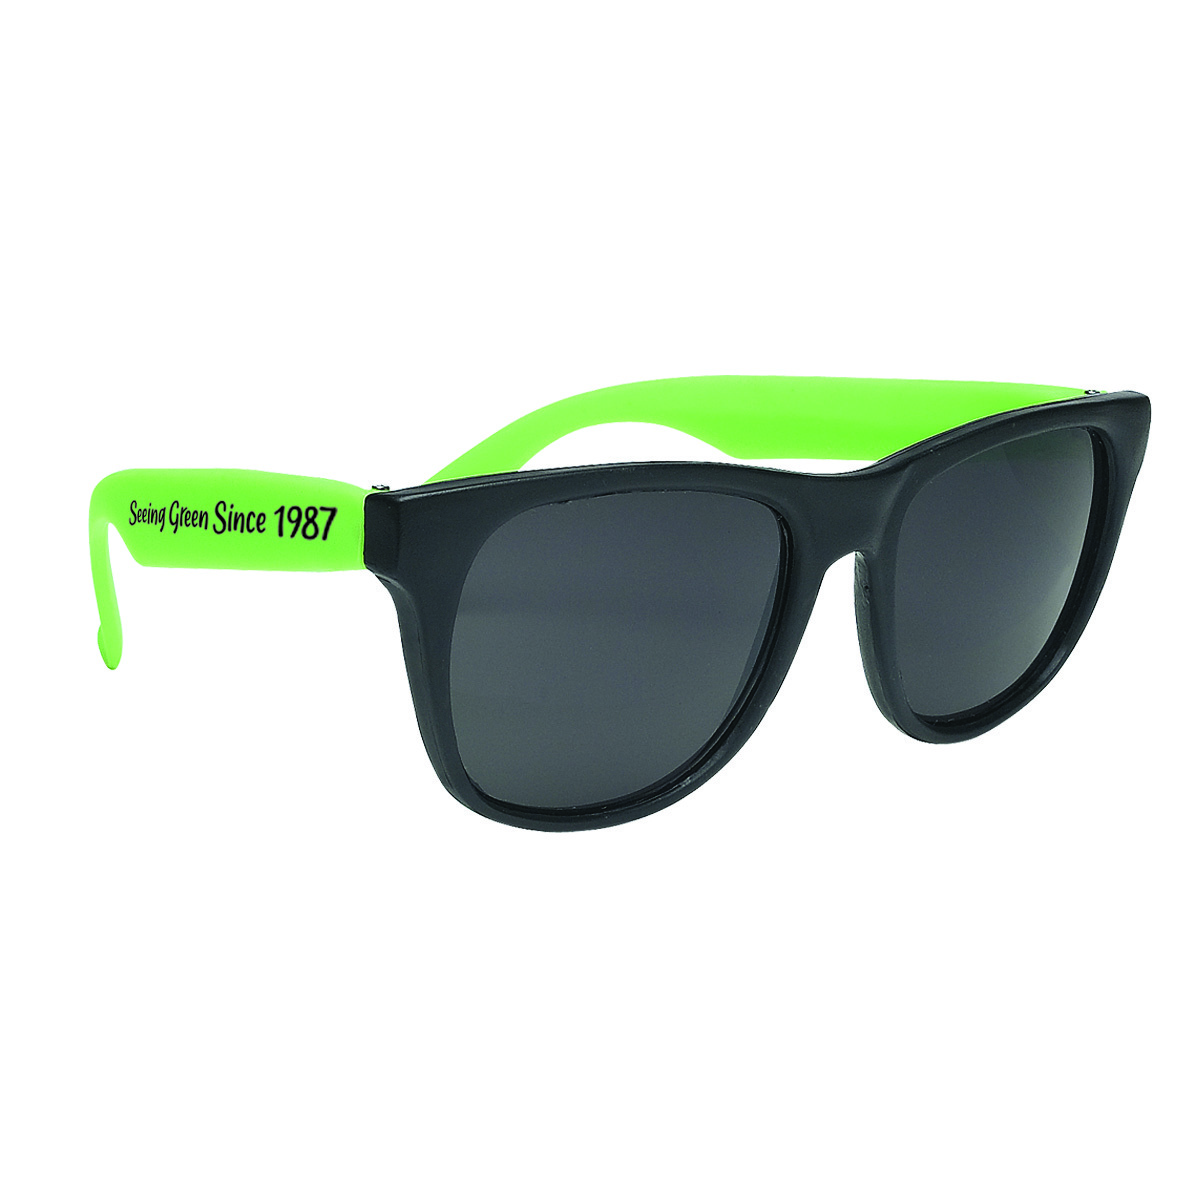 recycled sunglasses with logo